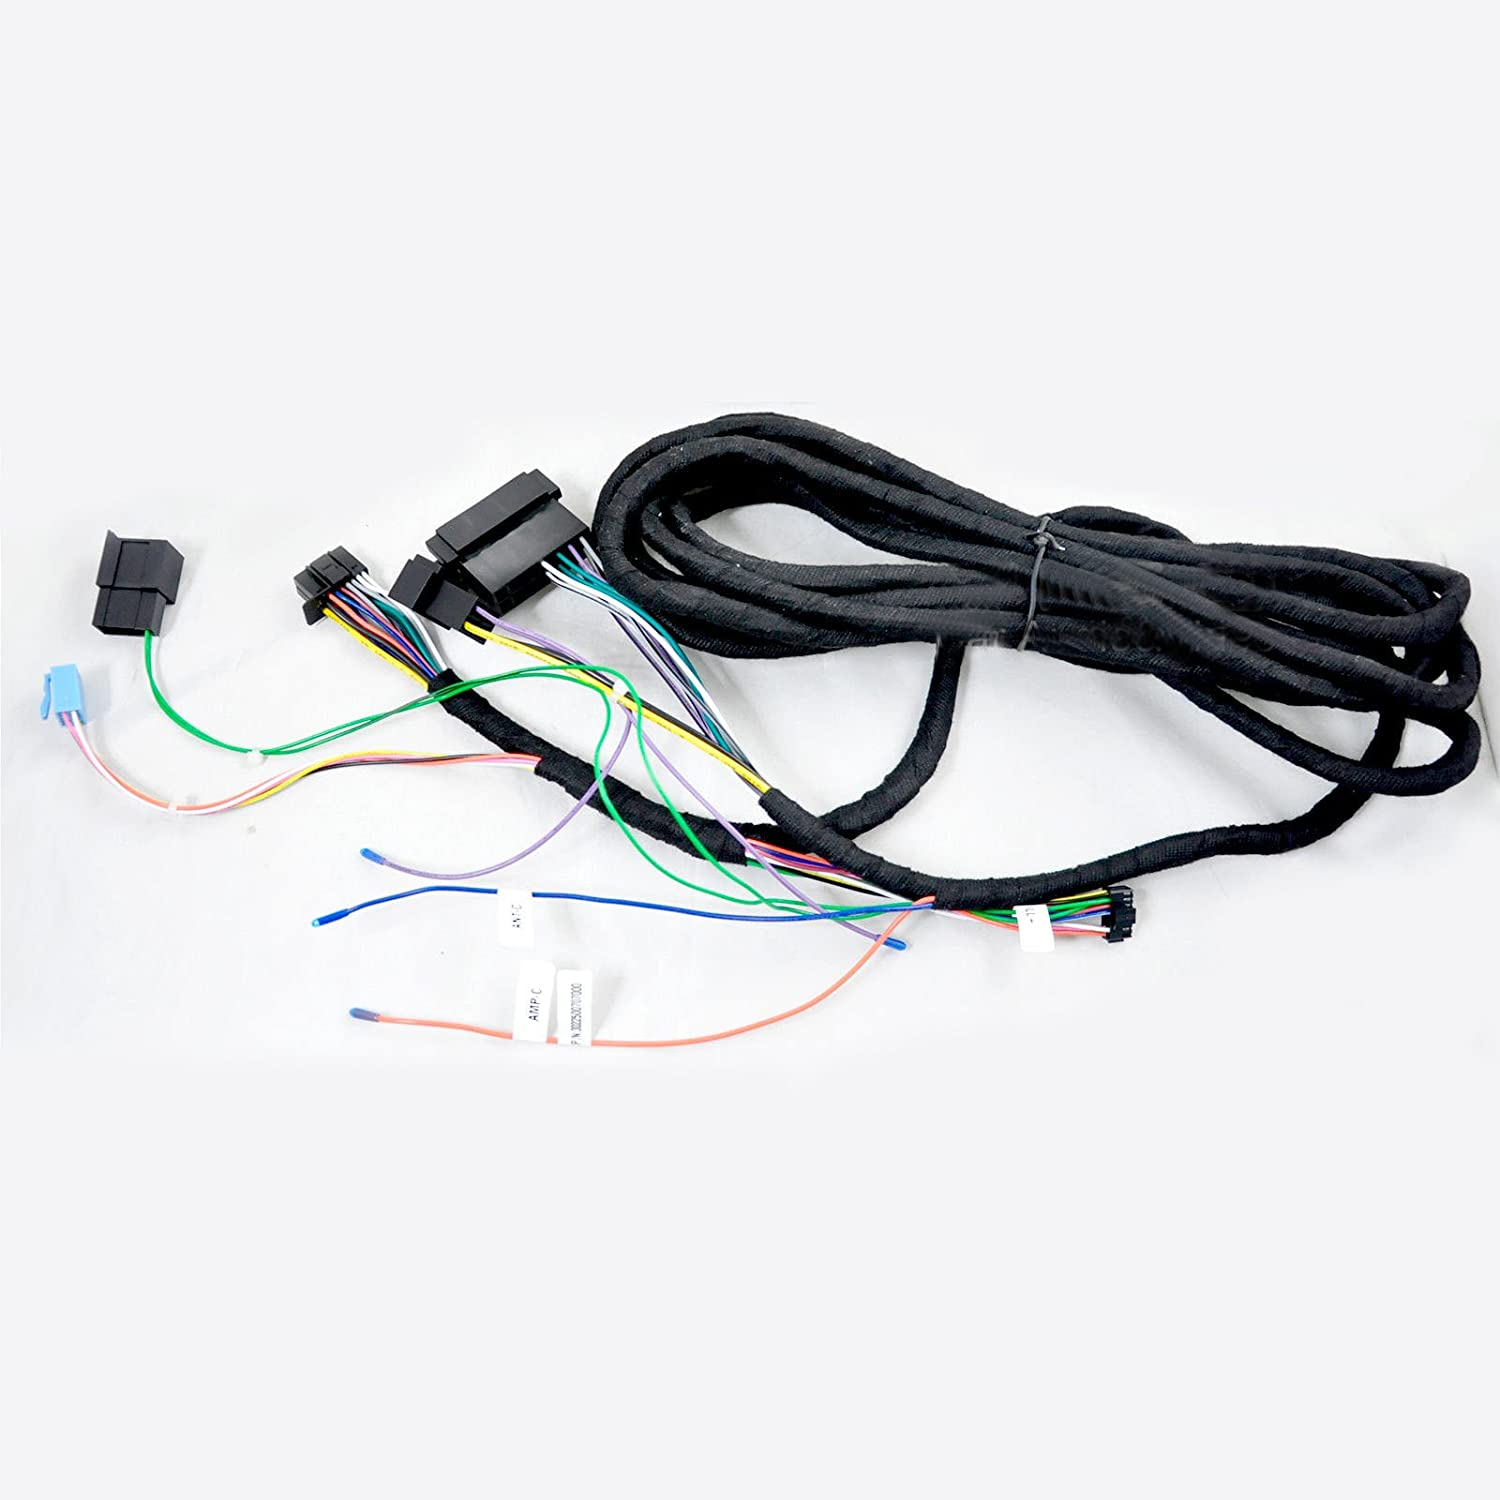 Witson Fiber Optic Cables Extension Kit Speaker Cable Mercedes W203 Phone Wiring For Benz C Clk Cls E G S A B Class Home Audio Theater